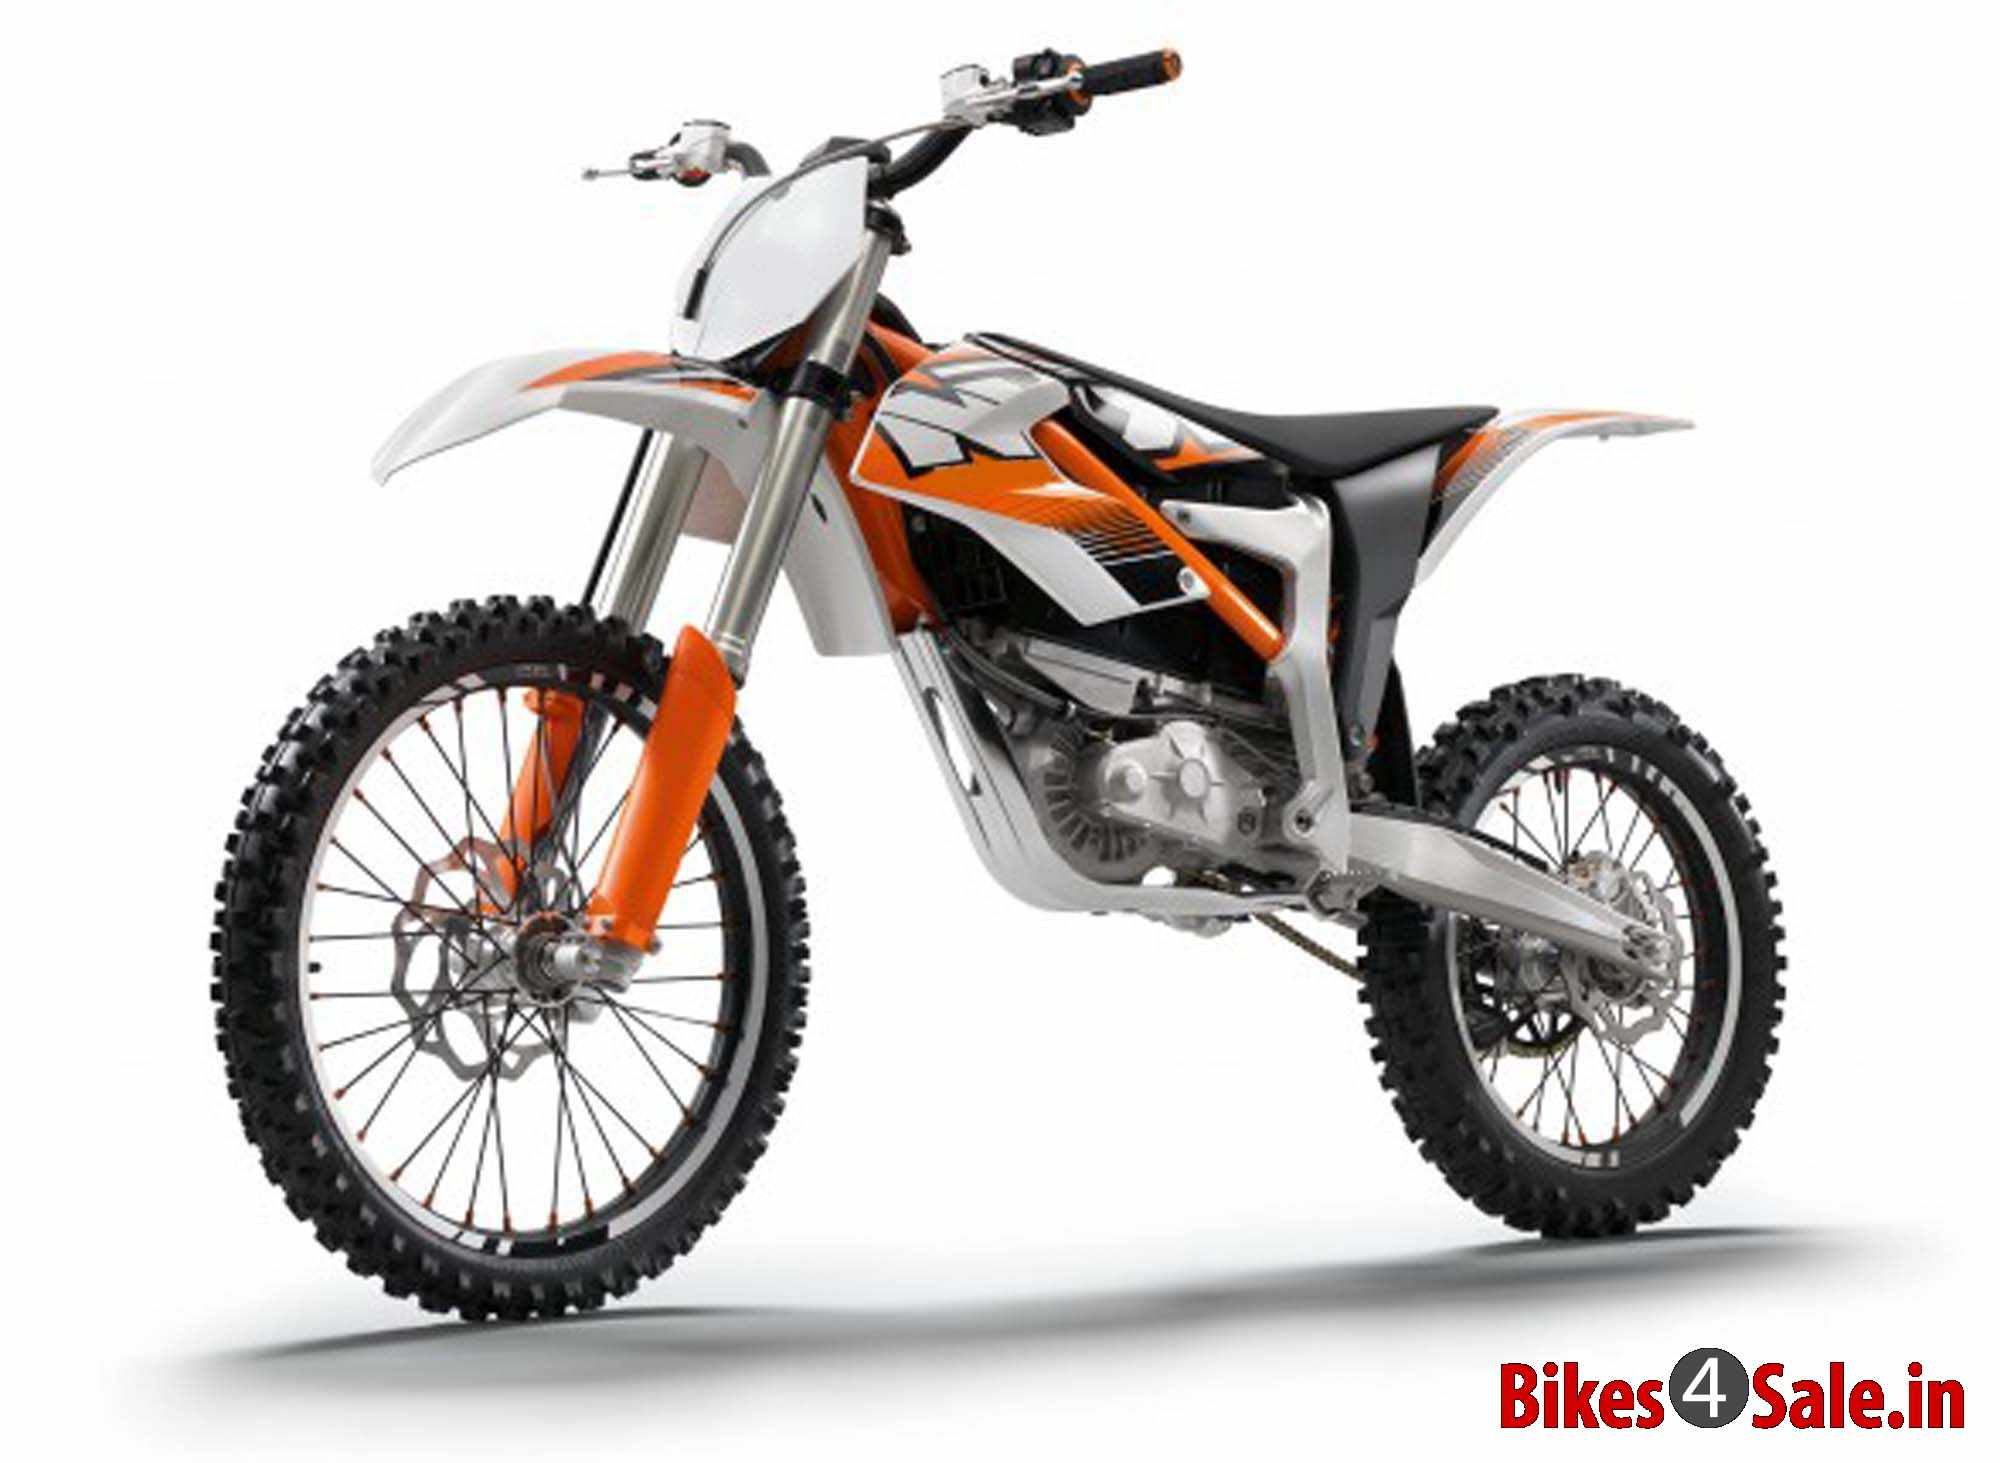 Ktm Scooty Price >> Ktm To Launch Electric Scooter E Speed In 2015 Bikes4sale